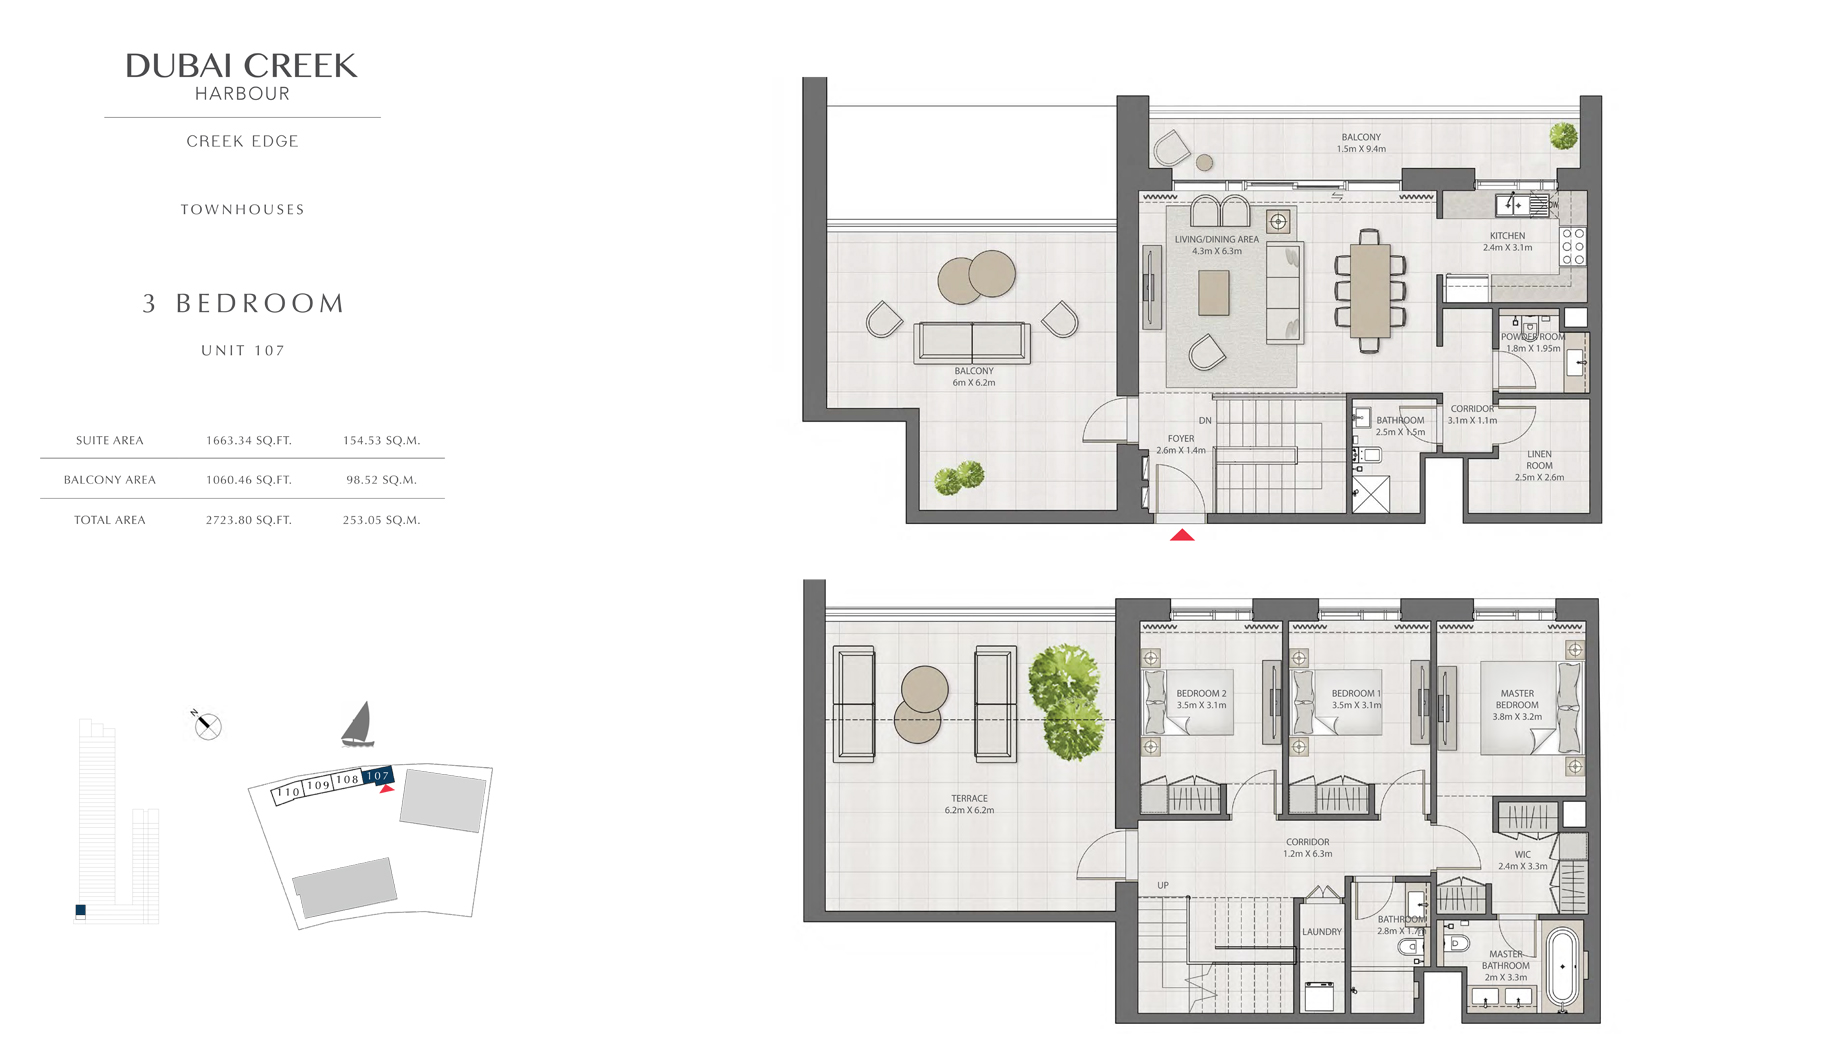 3 Bedroom Townhouses Unit 107 Size 2723 sq.ft